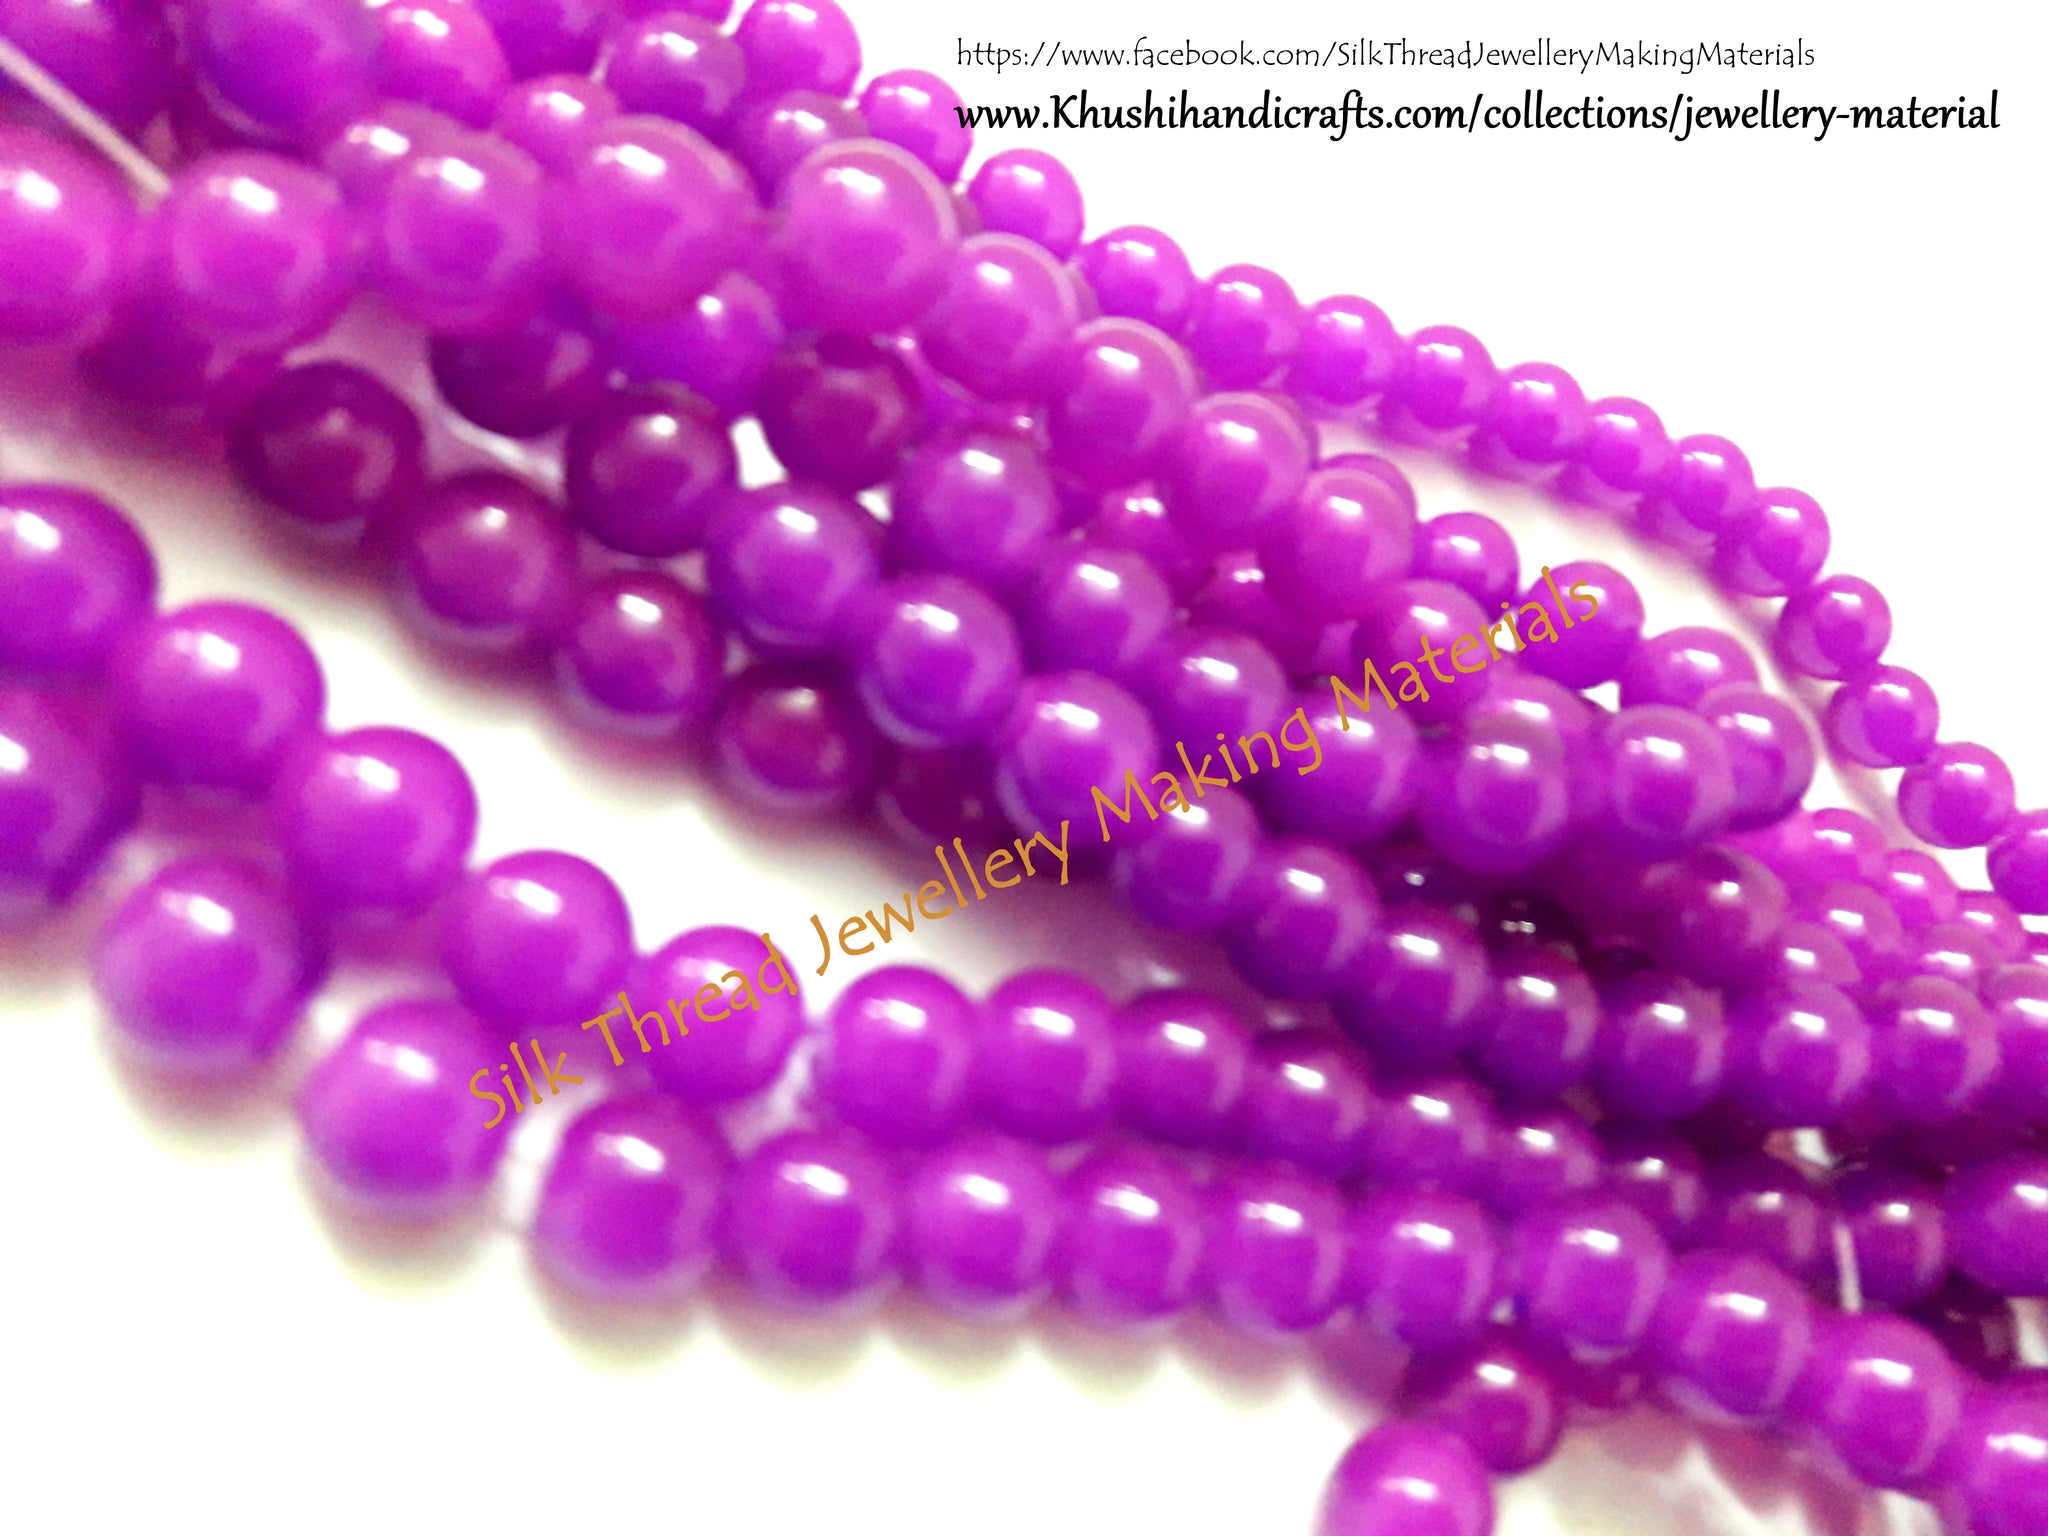 sale rosary bulk meditation turmeric india wholesale in prayer mala pin mm hindu japa for haldi beads